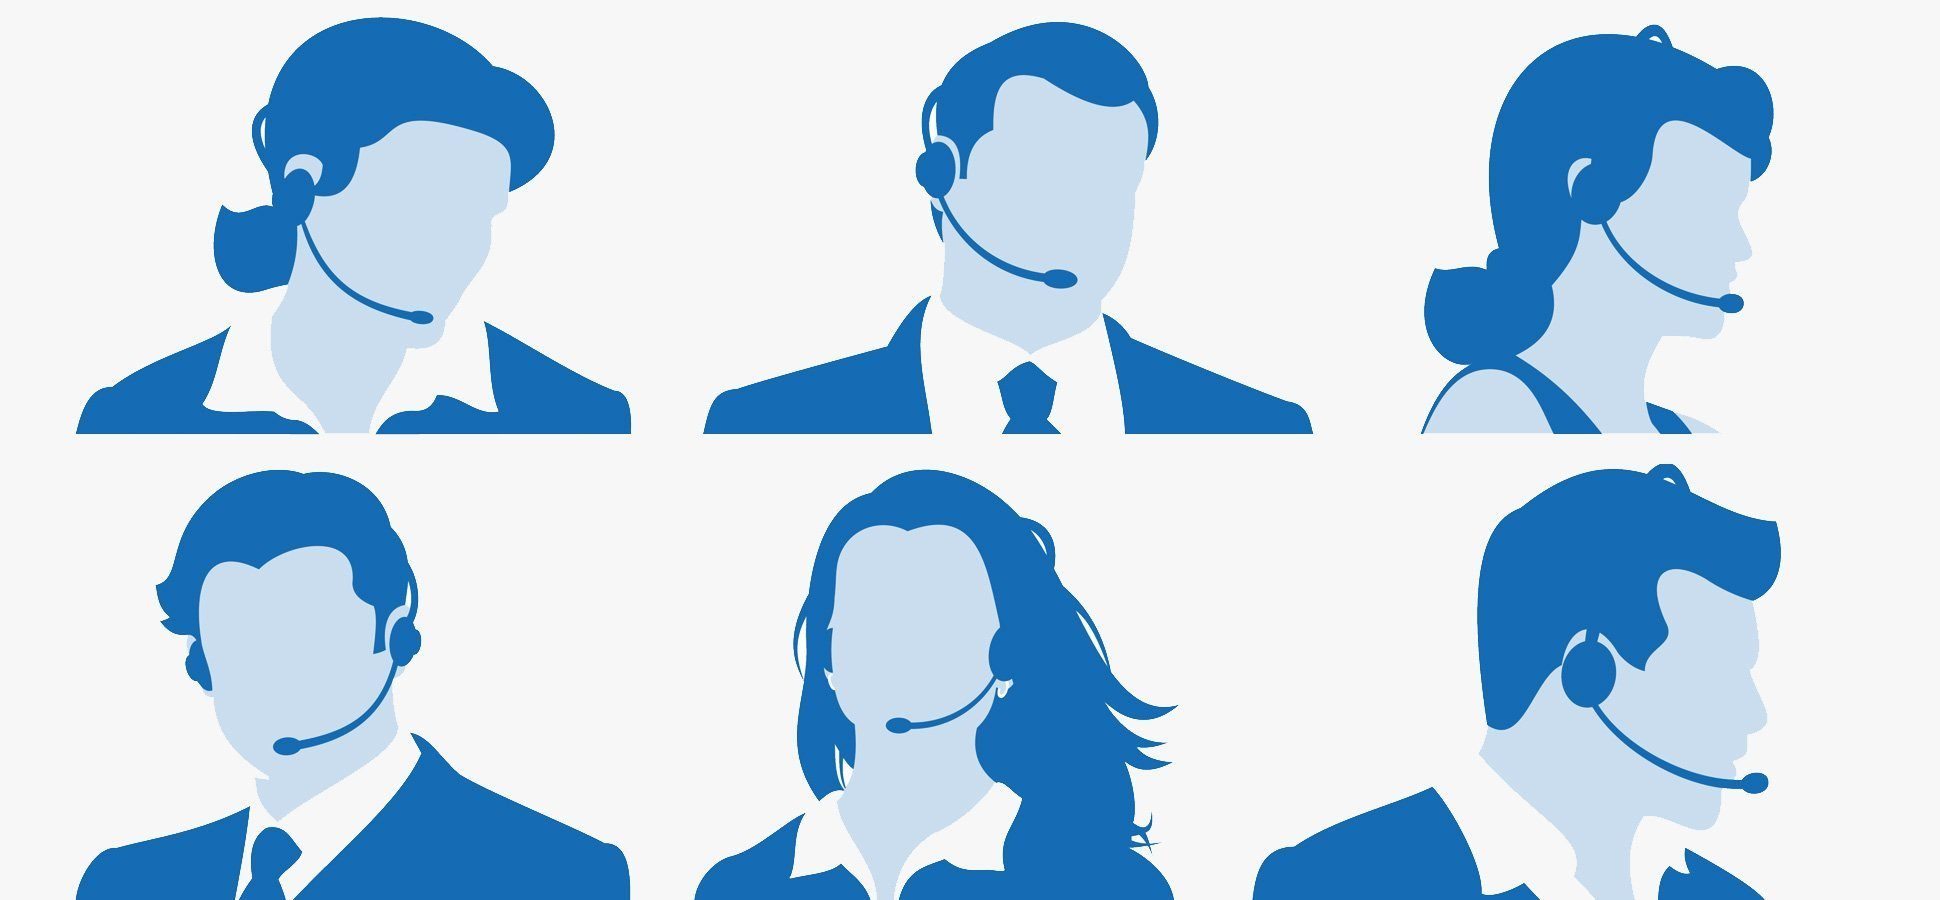 Customer Service Representatives Are More than Just an Employee, They Are Your Public Face